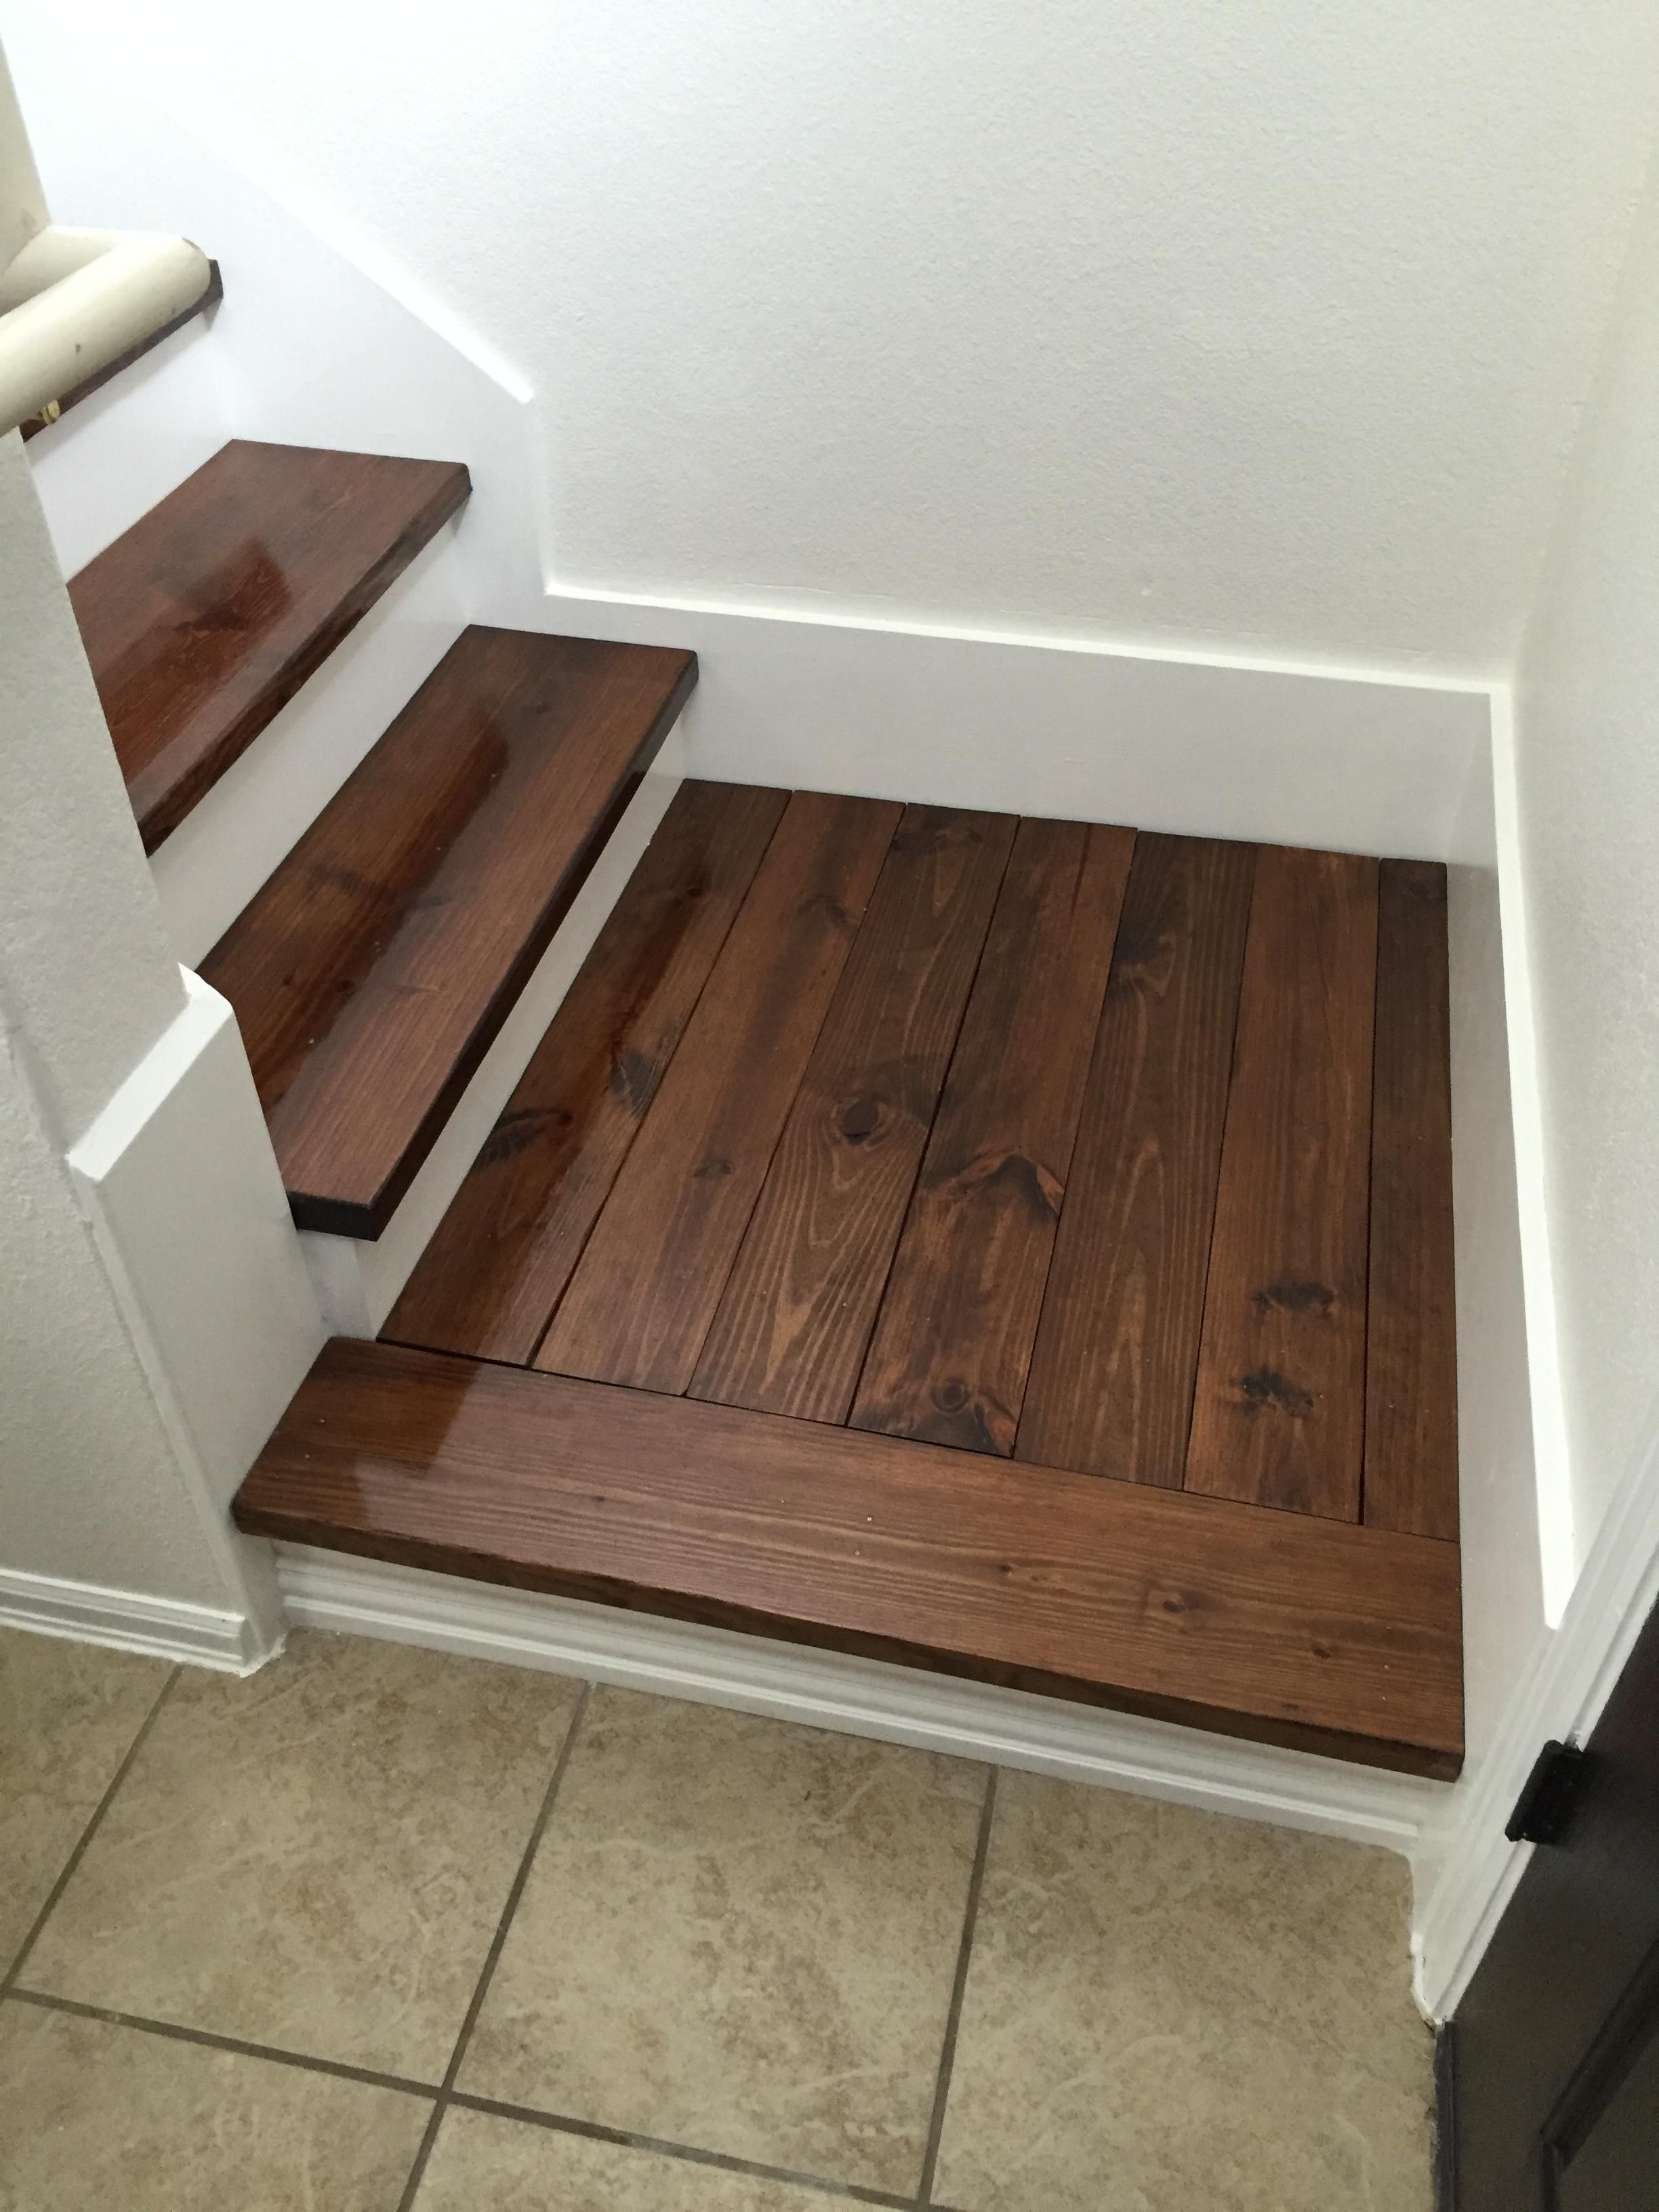 Replaced The Carpet On Our Stairs With Wood Imgur With Images   Stairs Covered In Wood   Simple   Wood Paneling   Glass   Rustic   White